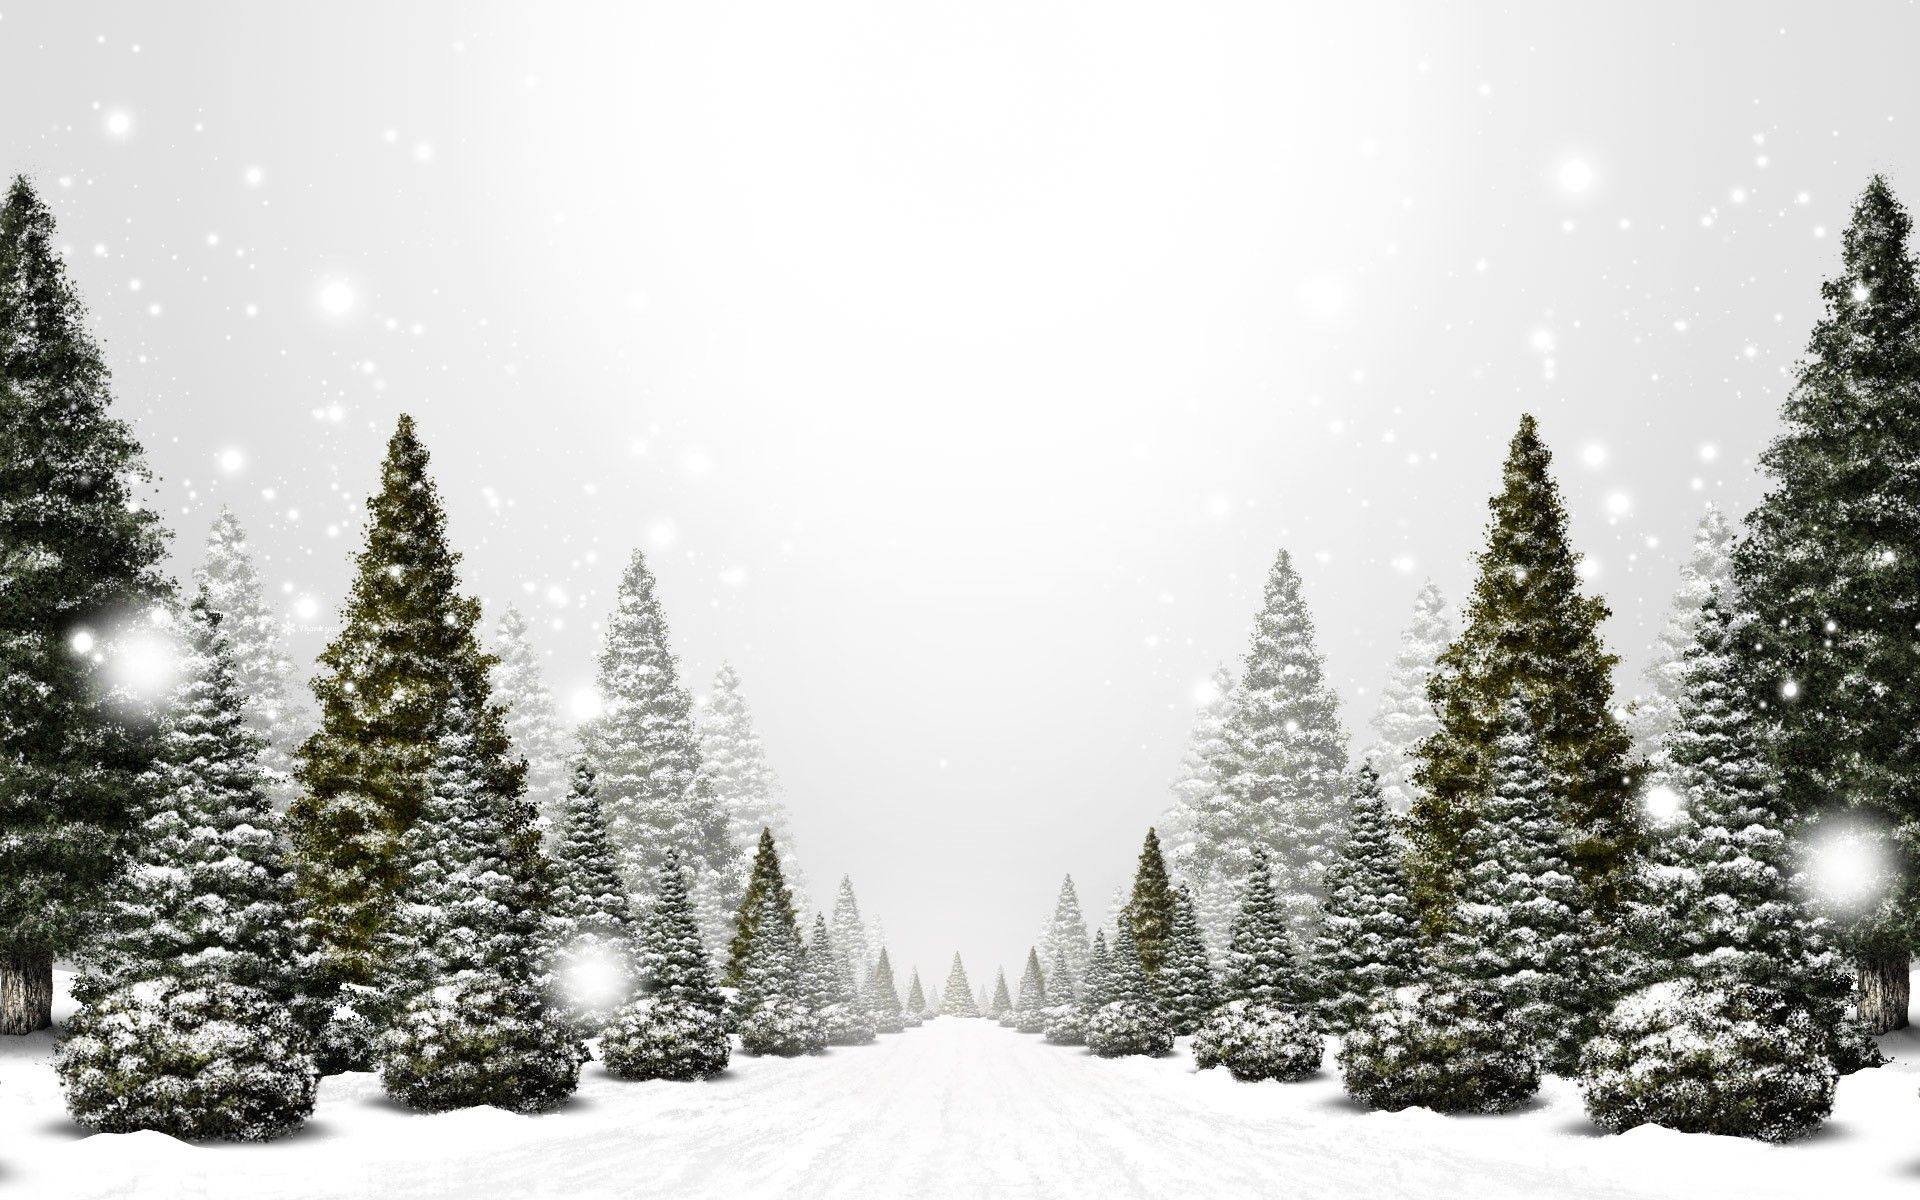 Winter Christmas Gallery Wallpaper For Free Nice 1920x1200 Wallpapers 56